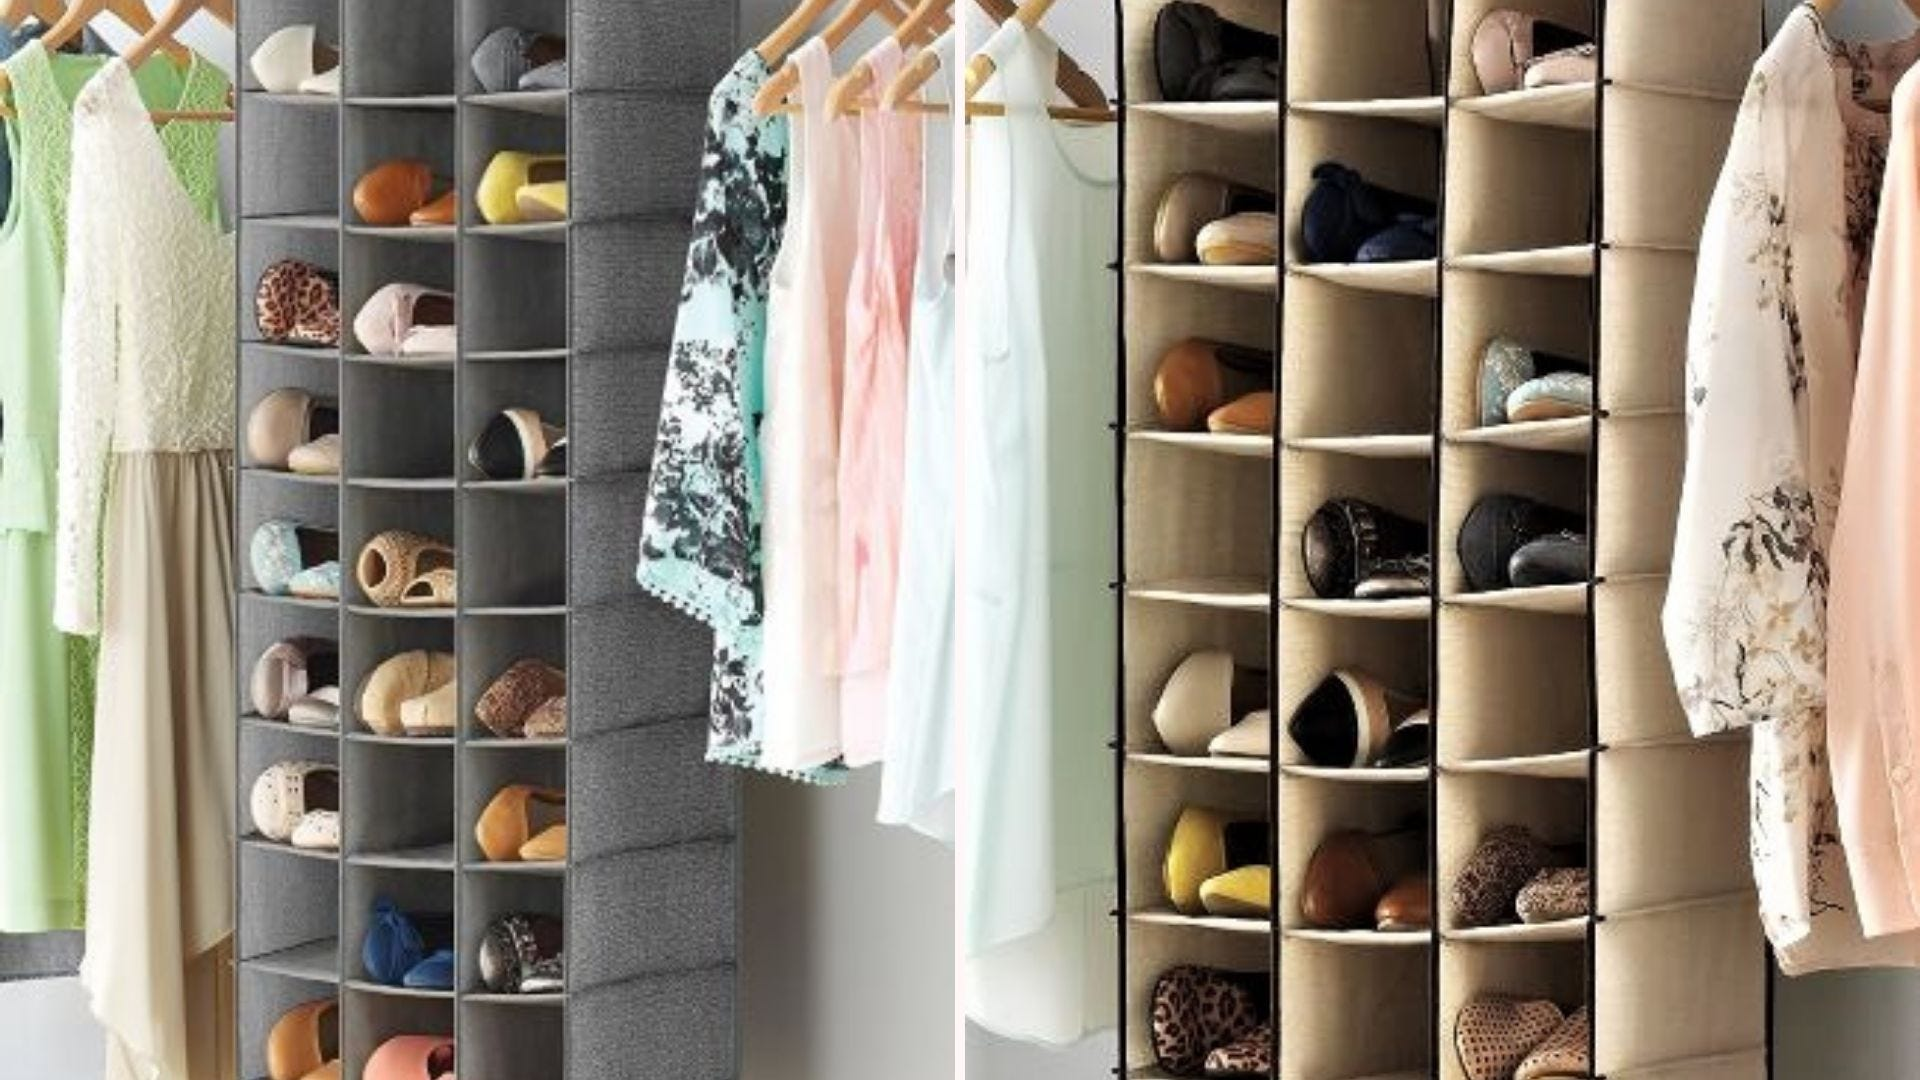 Two hanging shoe racks in closets.